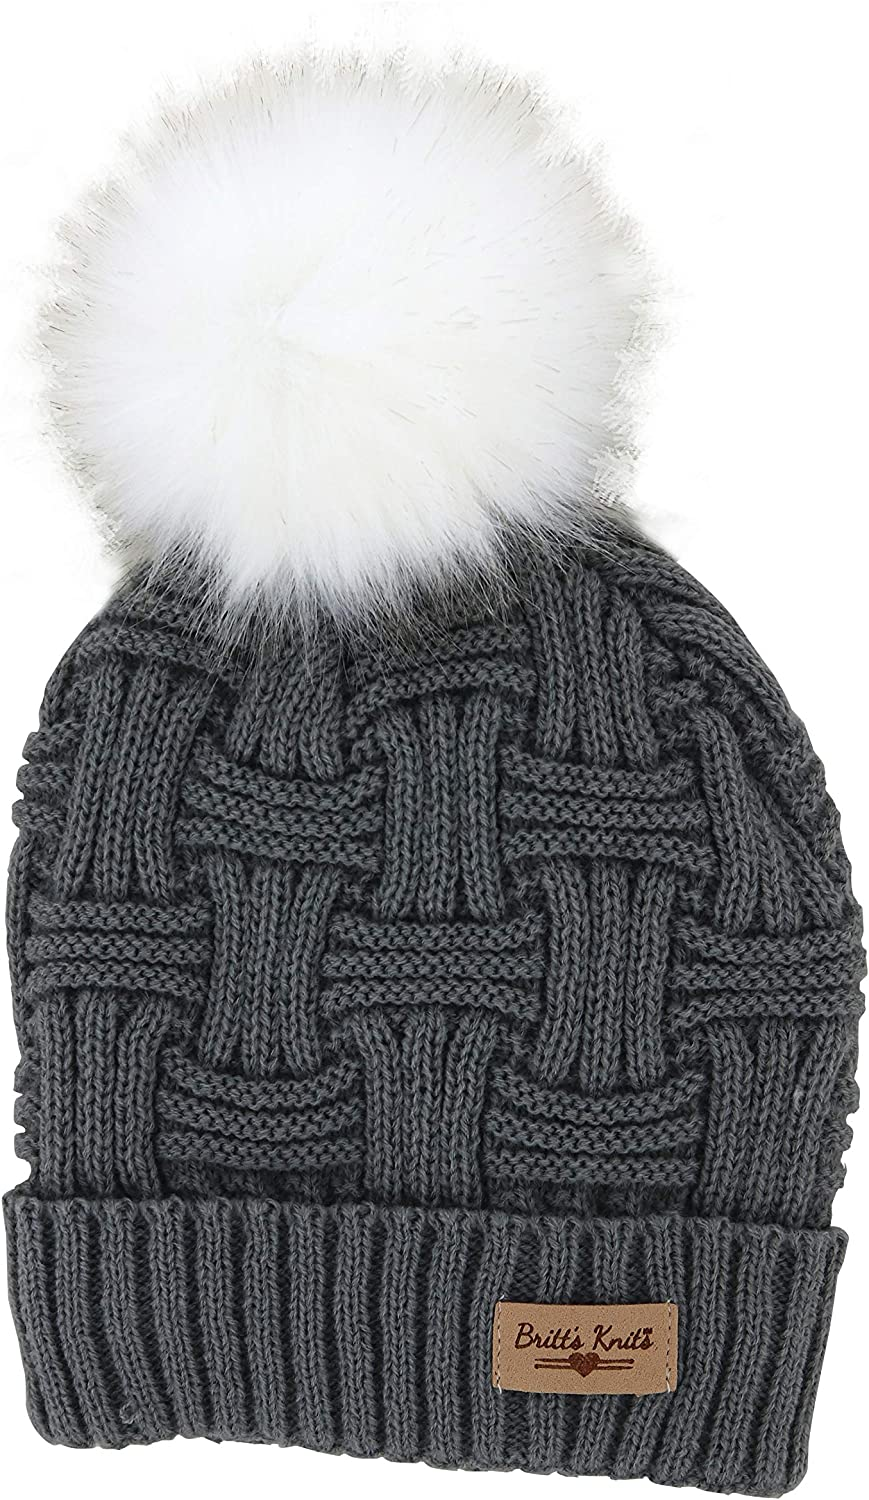 Choose your Color Now 20 Percent Off!! 100/% Hand Made Ultra Soft and Cozy CLASSIC BEANIE for the Whole Family